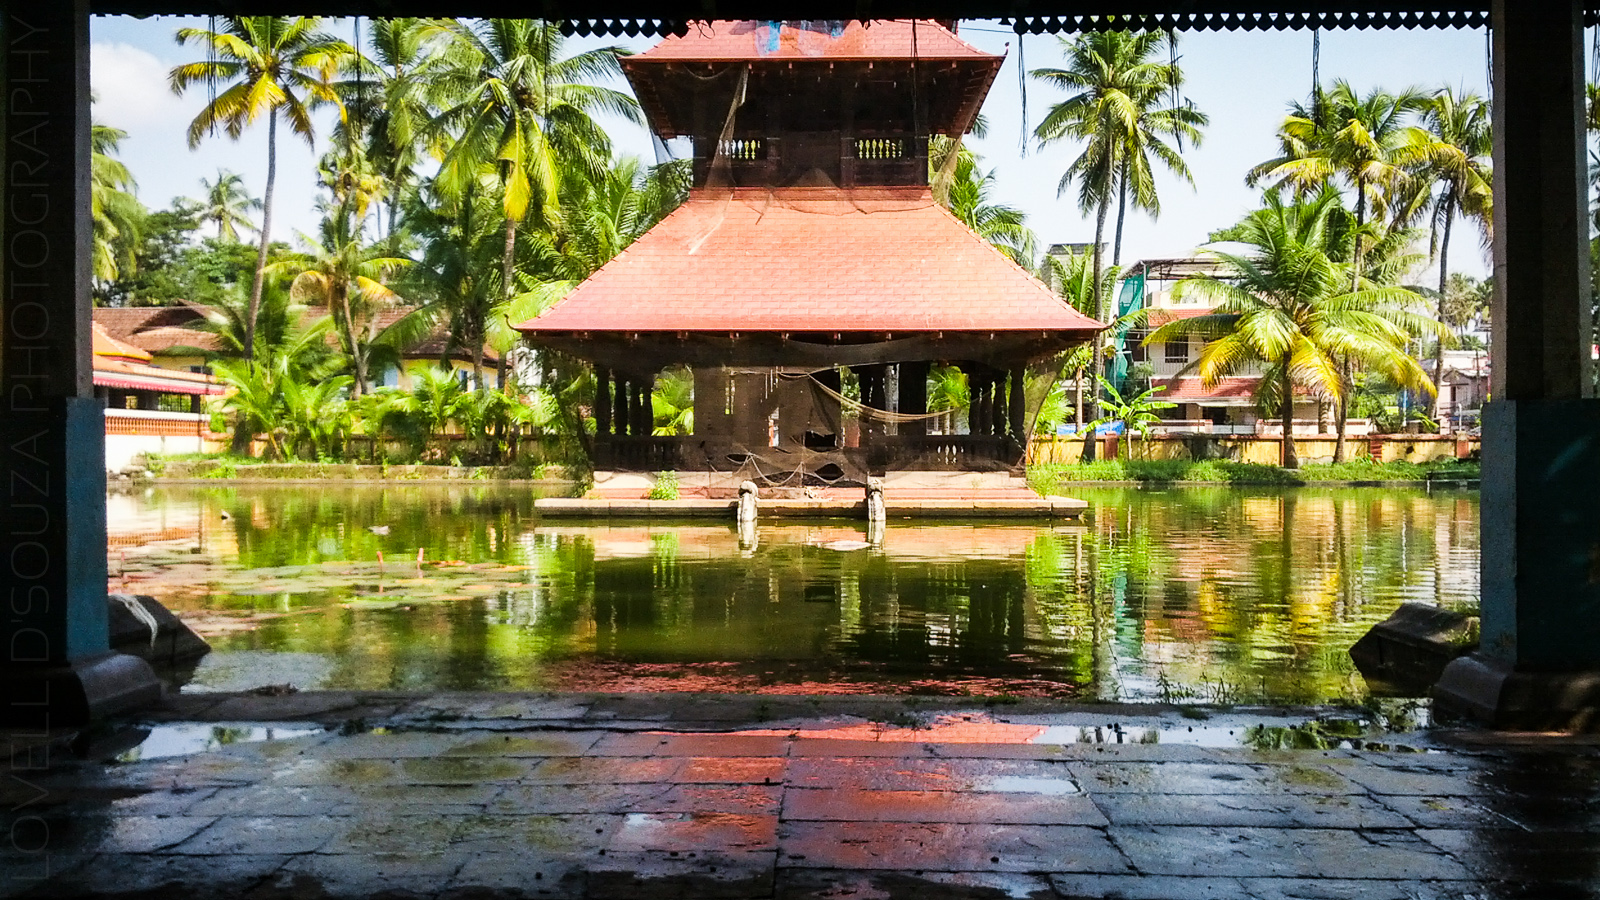 Thirumala Devaswom Temple Pond, Fort Kochi